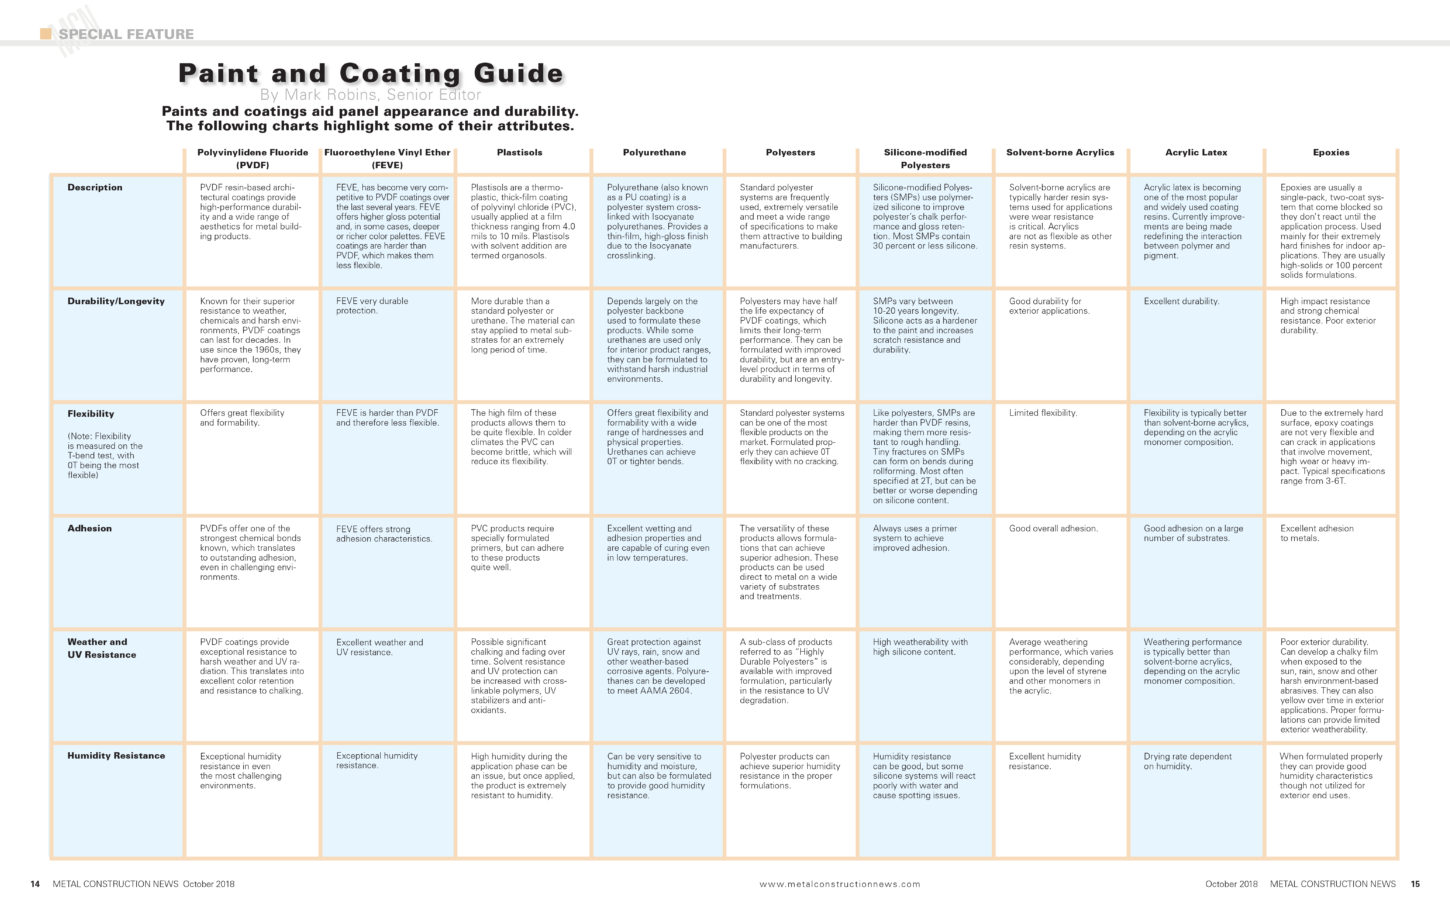 Paint and Coating Guide | Metal Construction News